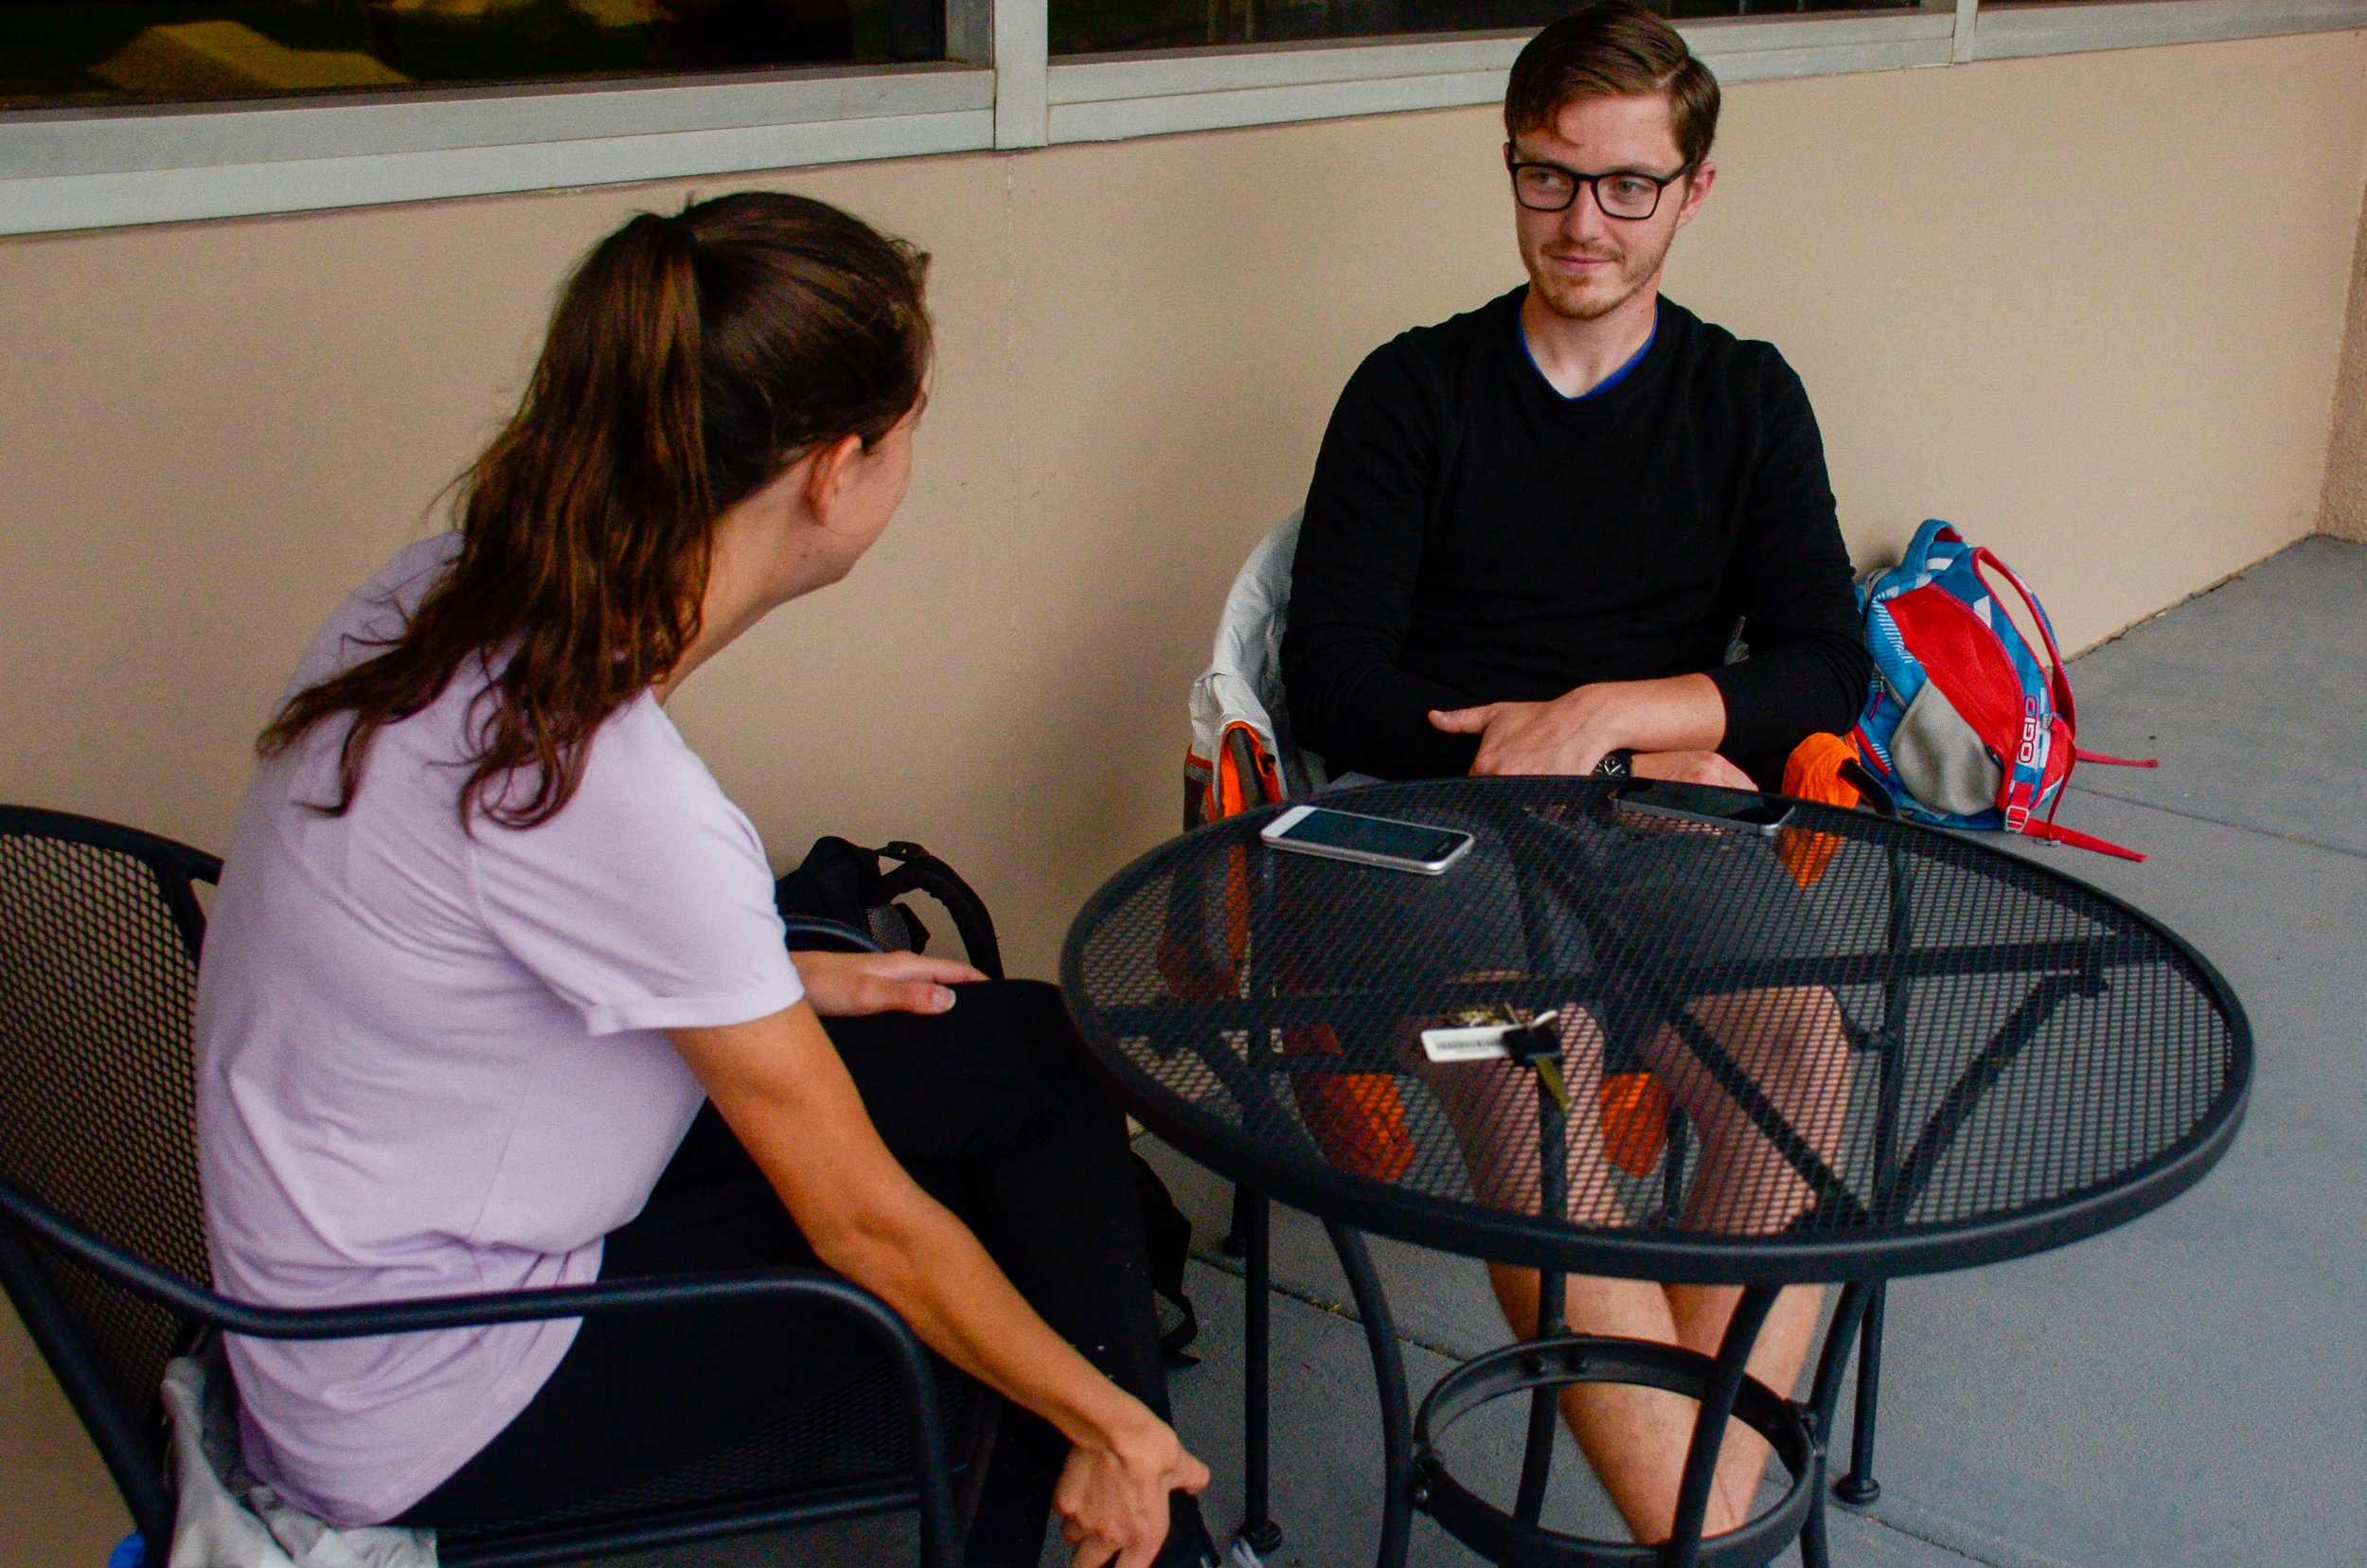 Ty Gautier, senior, catches up with his friend, Erin Leggett, as they relax and chat outside of the library.